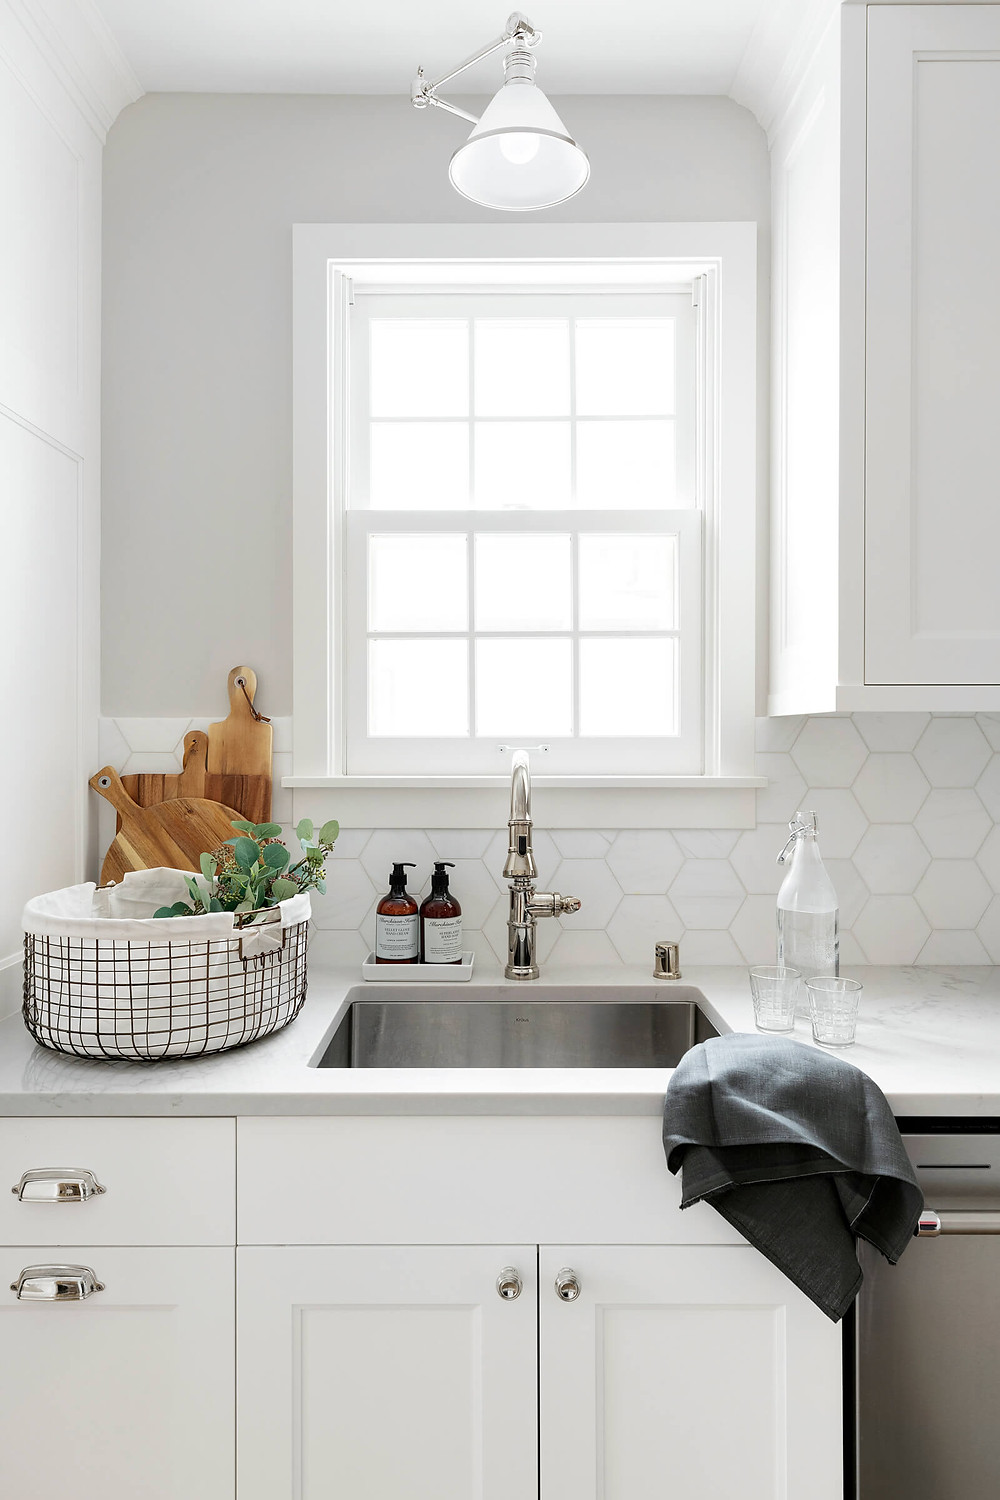 Kitchen sink, polished nickel faucet and lighting, white painted cabinetry.